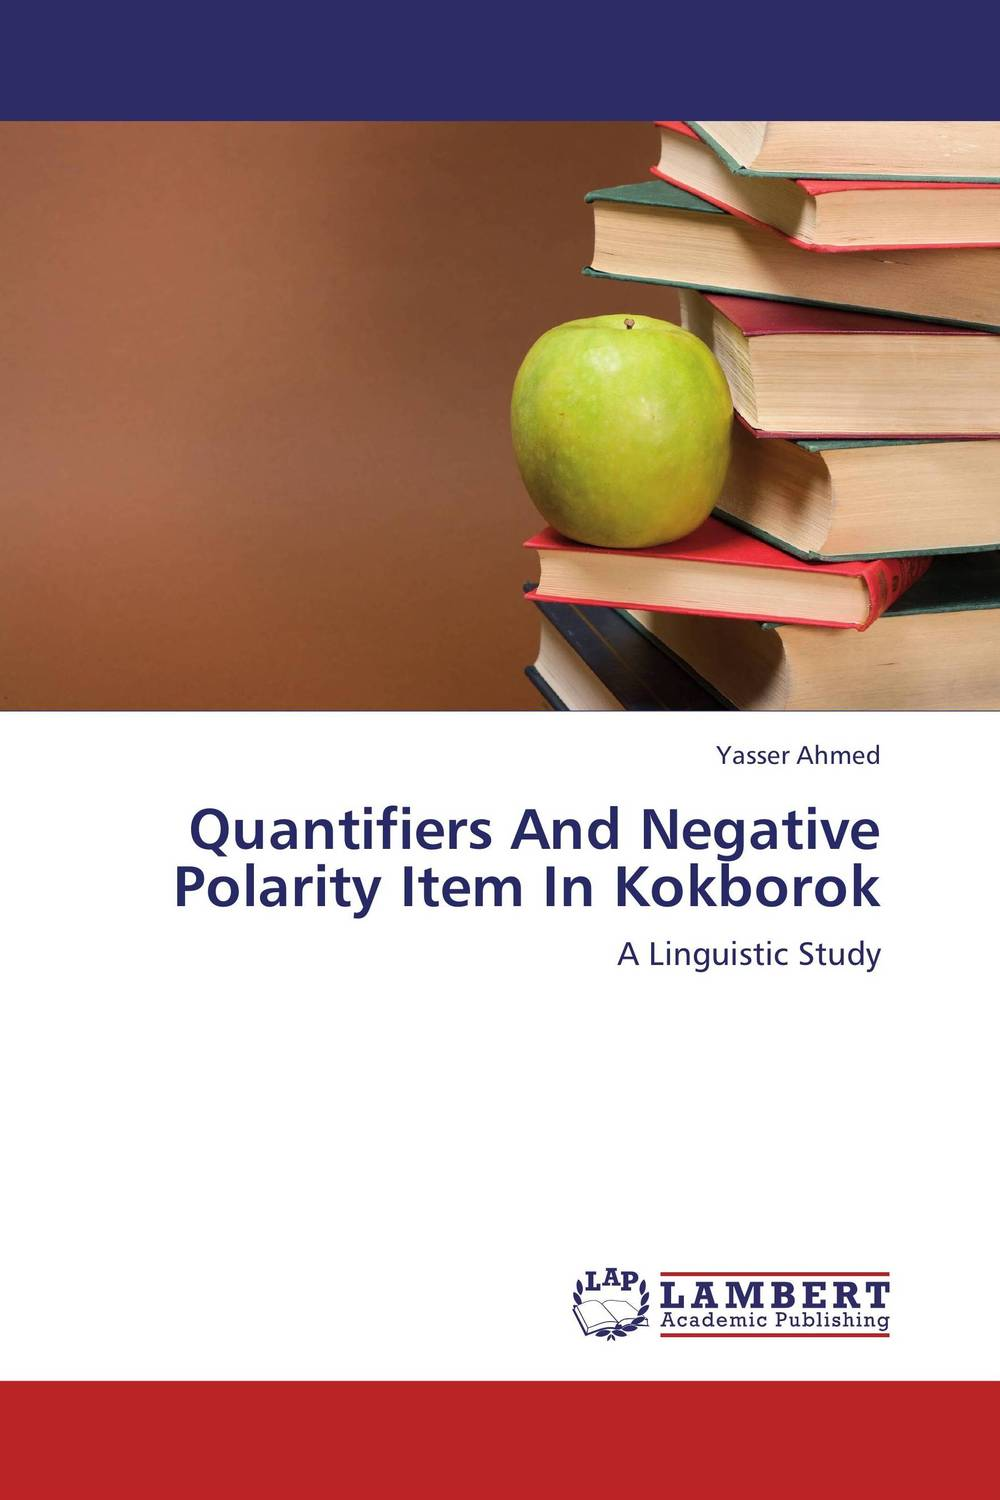 Quantifiers And Negative Polarity Item In Kokborok seeing things as they are